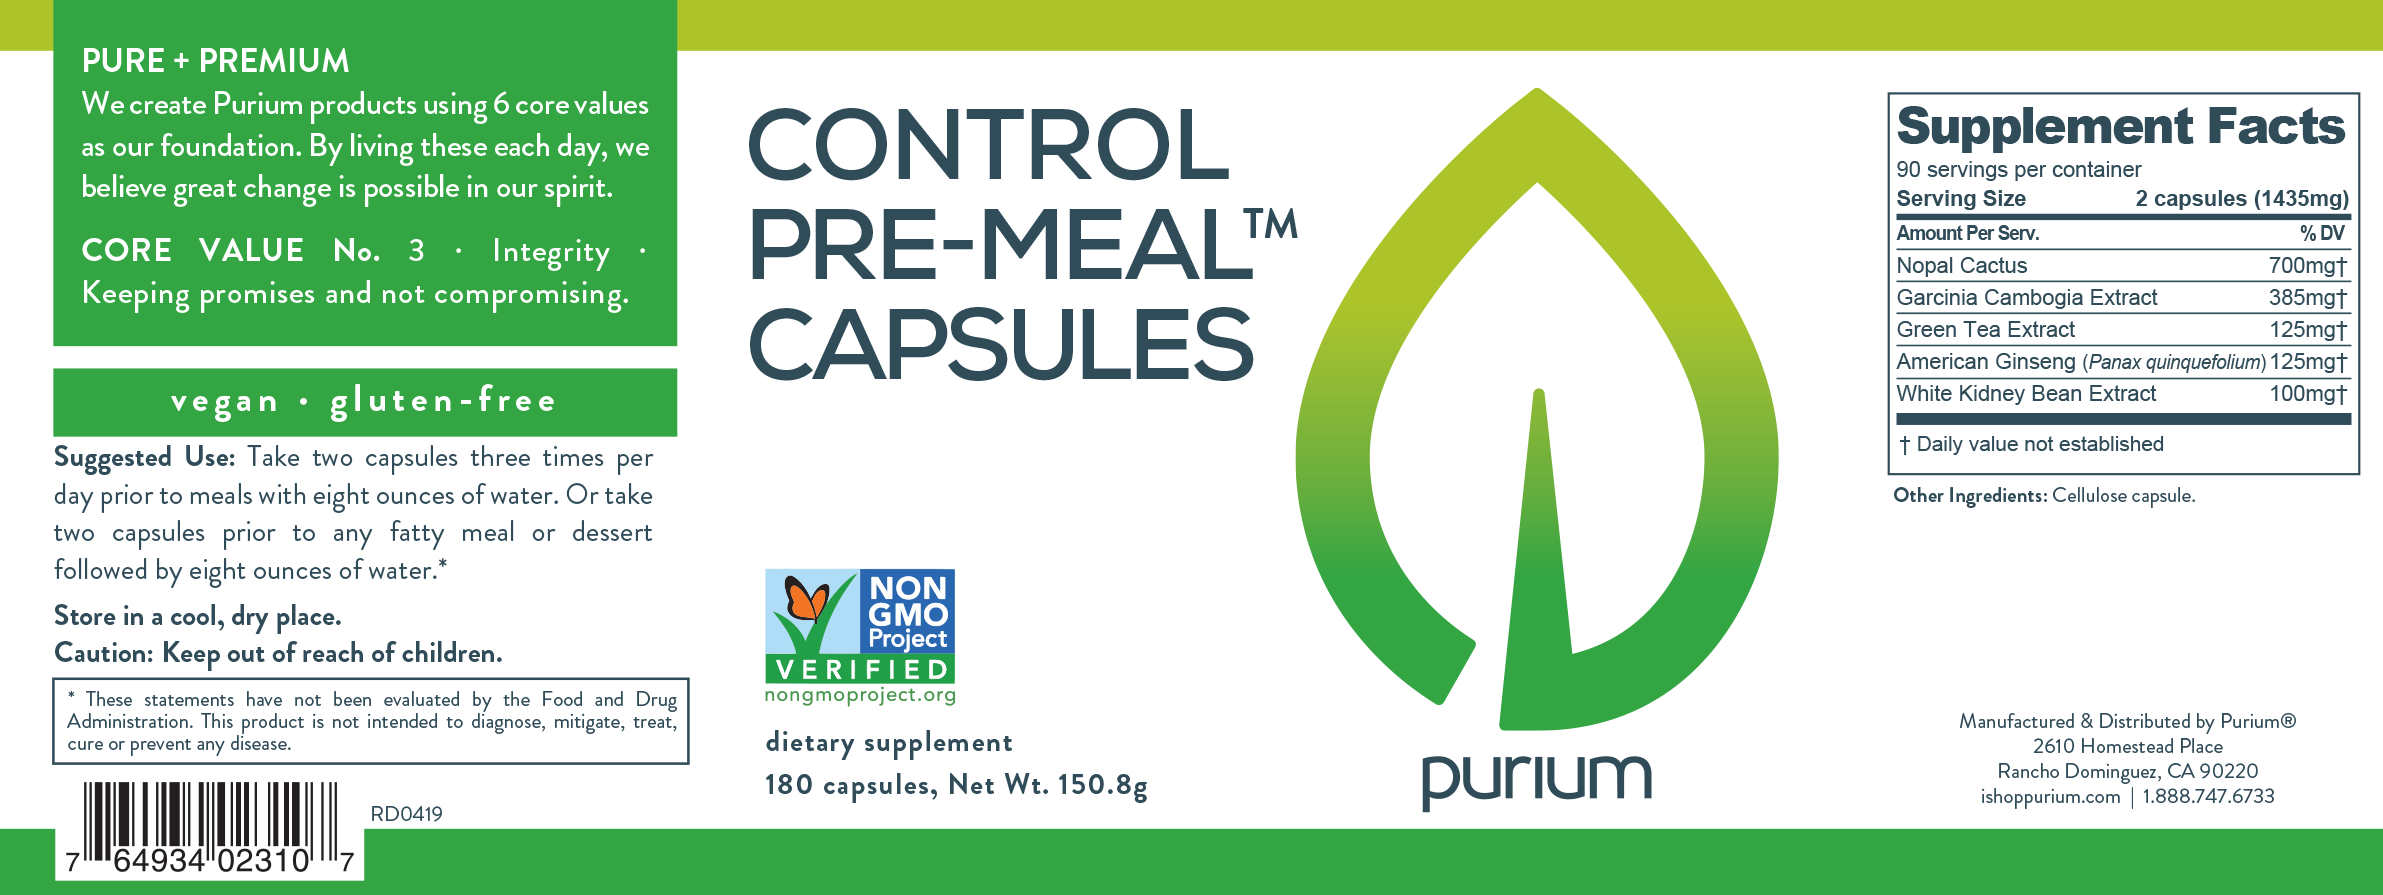 Purium Control Pre-Meal Capsules - Less than on Amazon